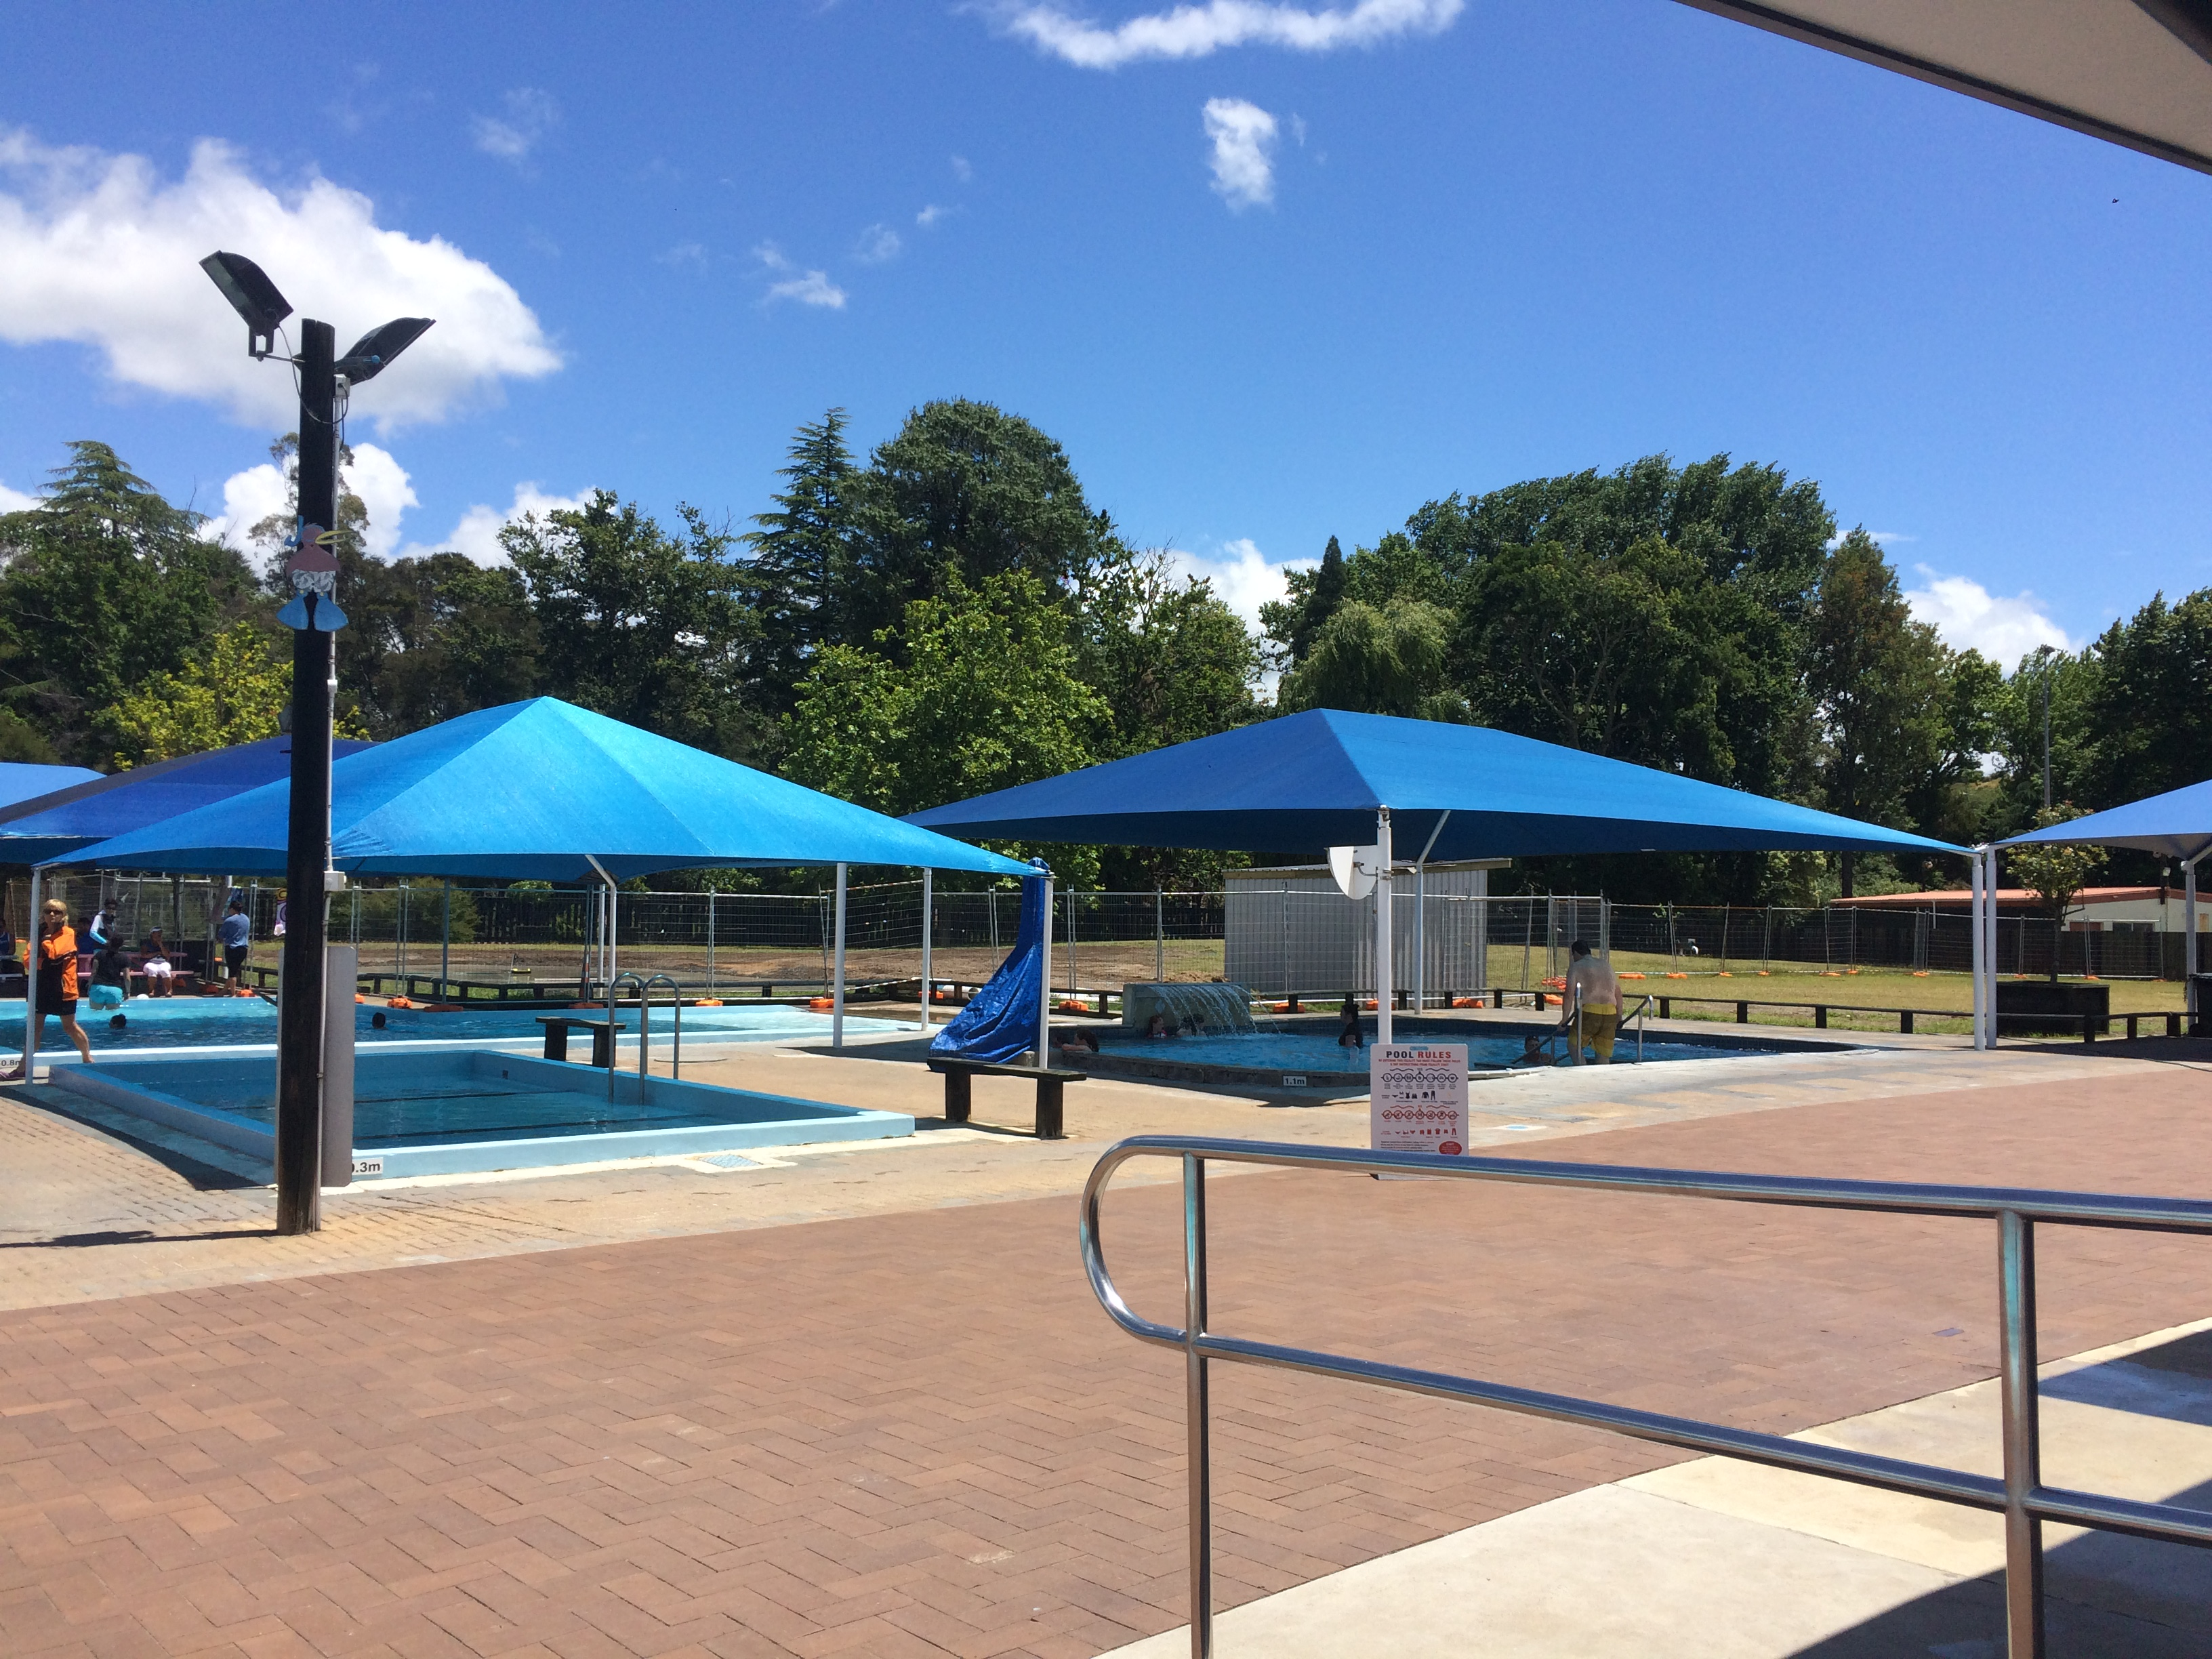 Hot Swimming Pool : Pools photos archive nzhotpools nz all s hot